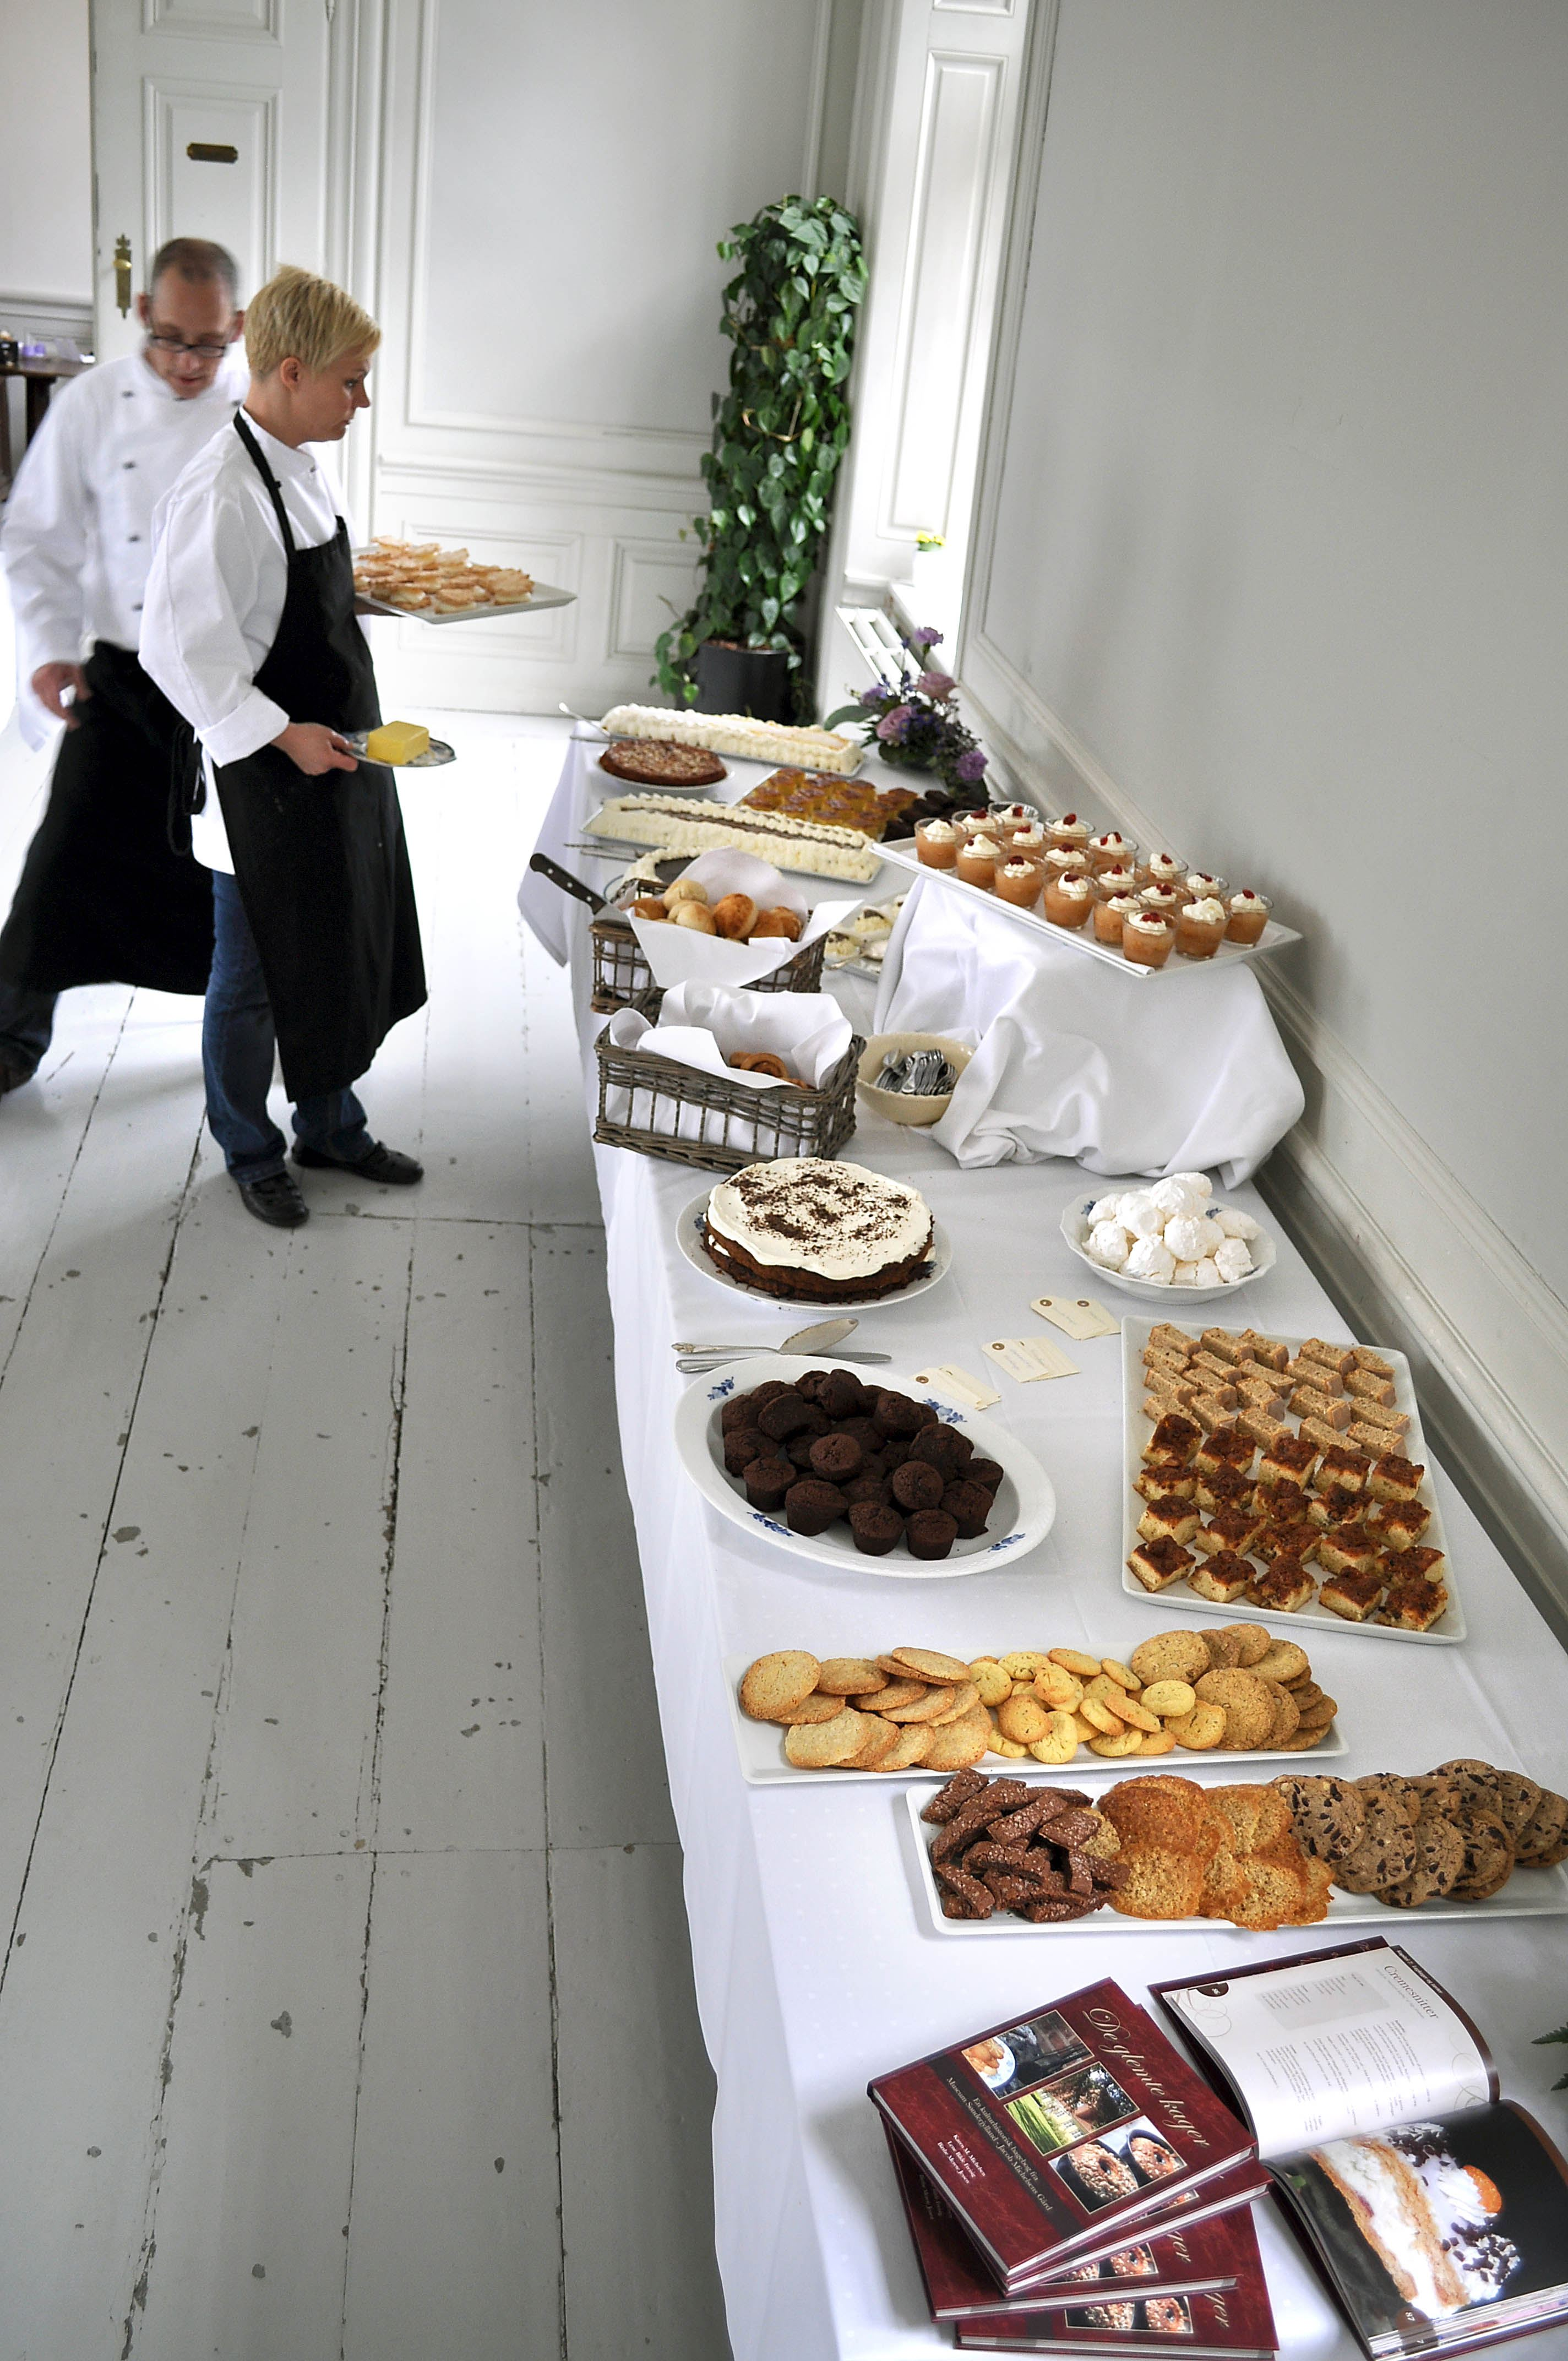 Coffee and Cake – The Southern Jutlandic Way at Gram Castle